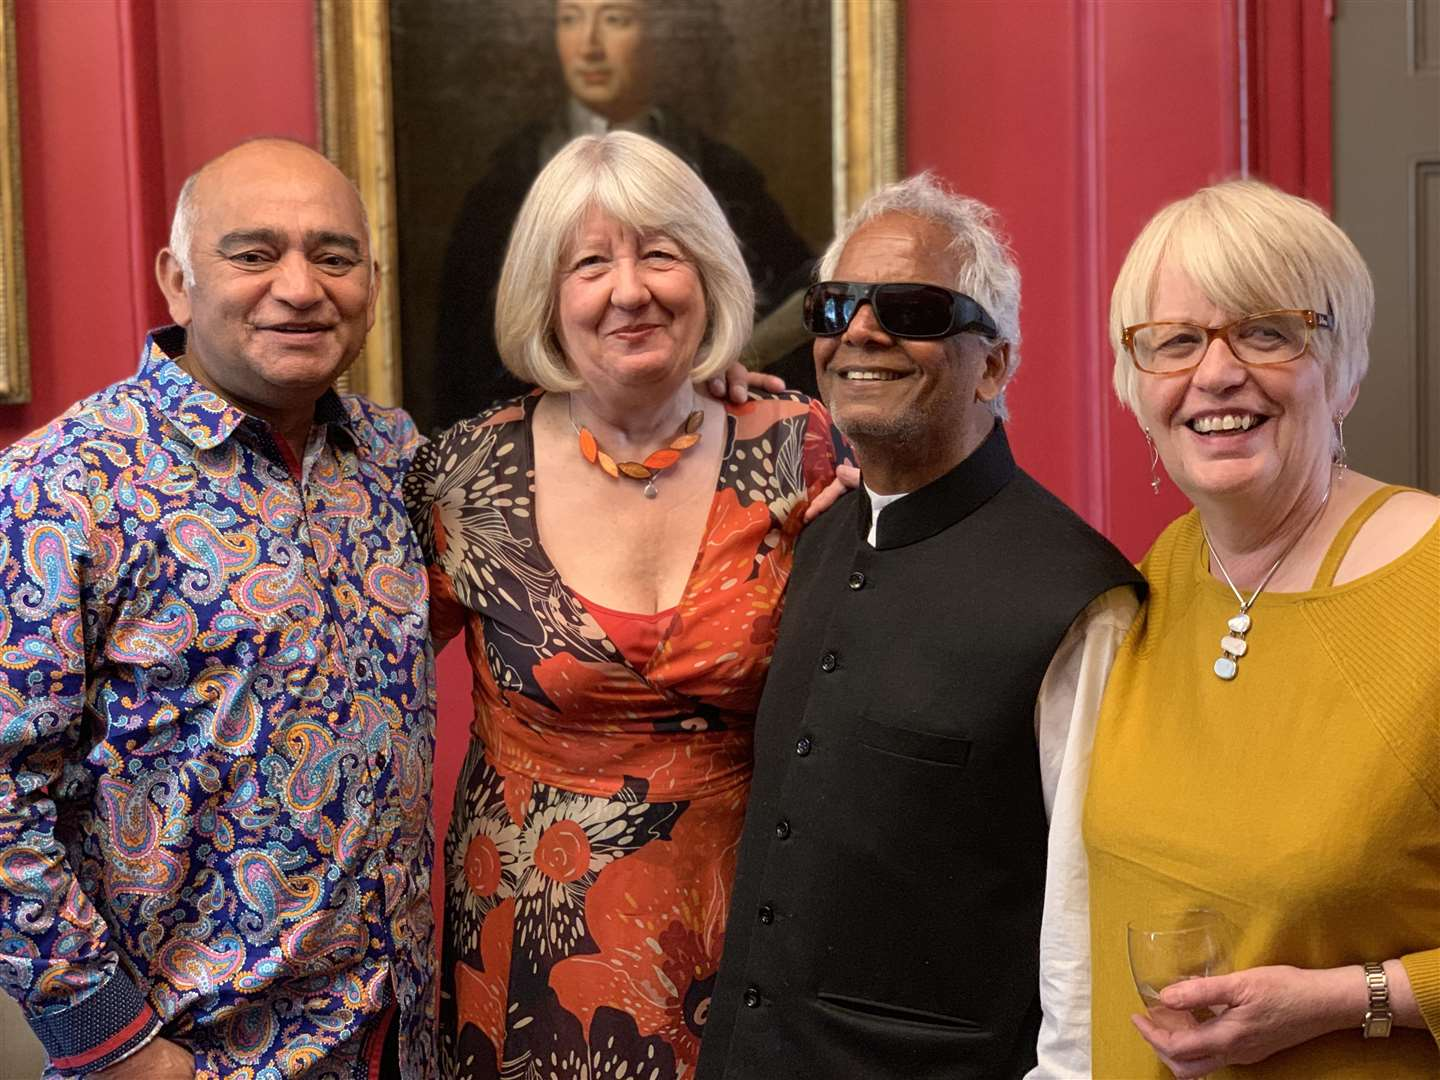 Sarah Rodgers, and clarinettist Geraldine Allen with Bhasker Patel and Baluji Shrivastav,at the Roaring Whirl launch event in London last month